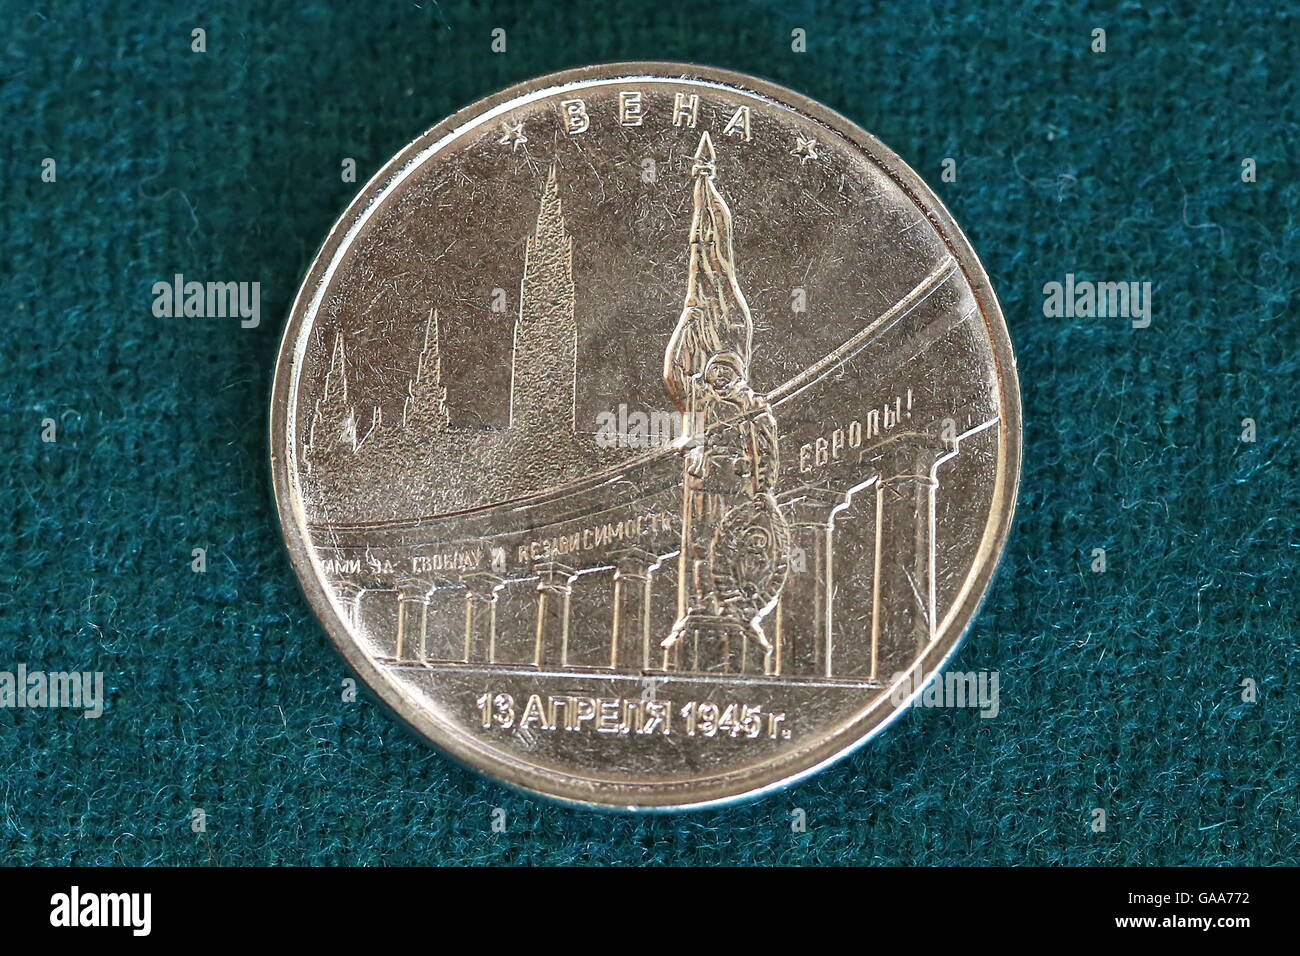 russia 5 rubles 2016 Capitals of the Liberated States Budapest